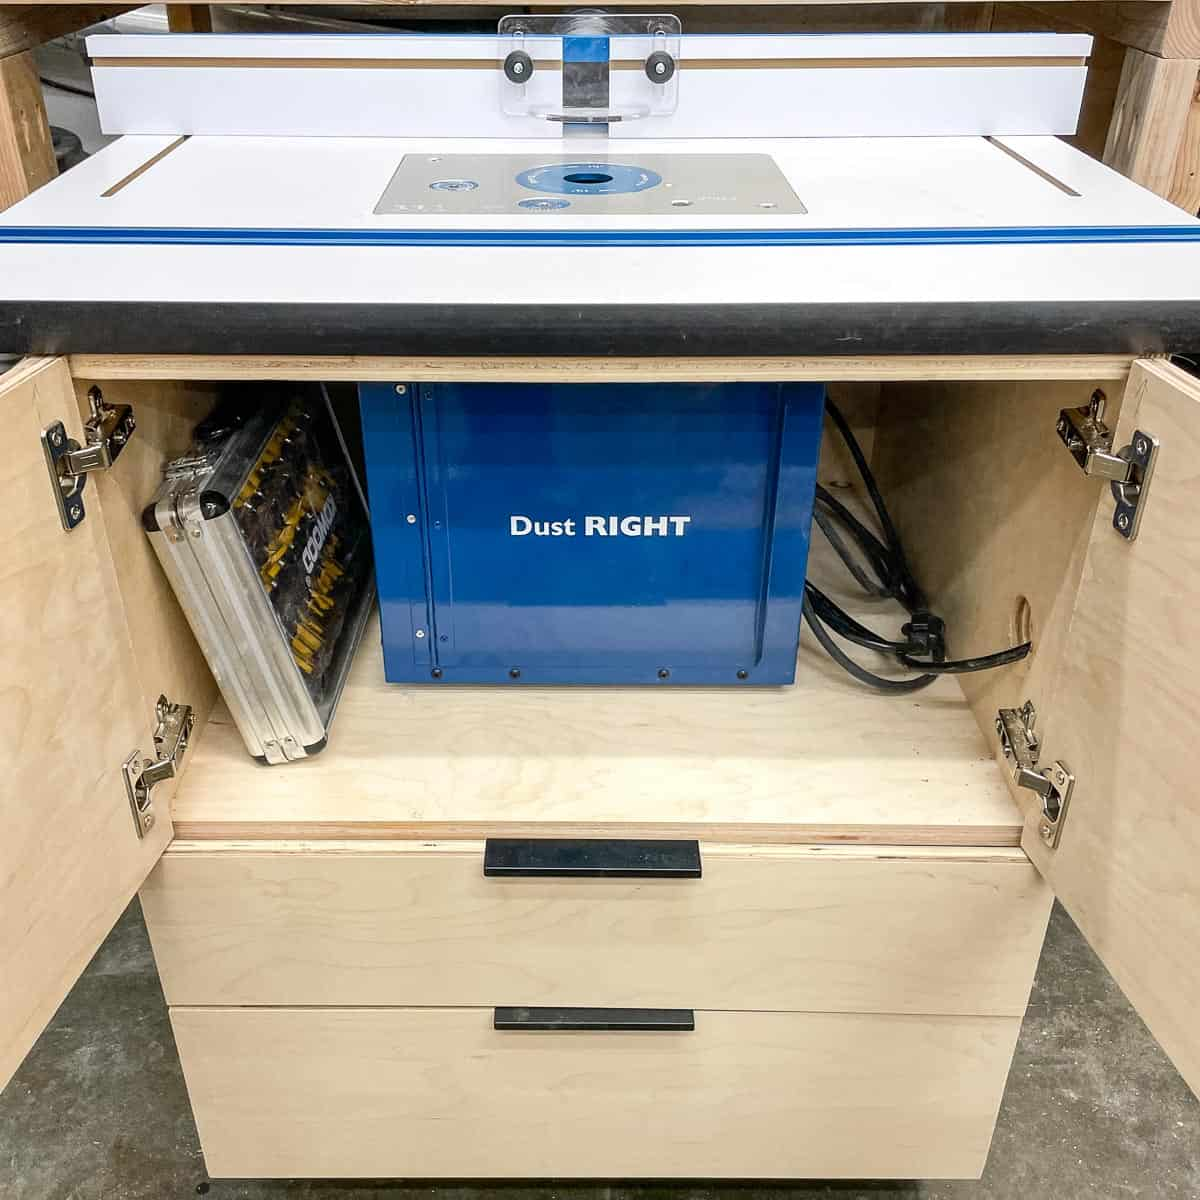 DIY router table with cabinet doors open to reveal dust bucket and router bit set